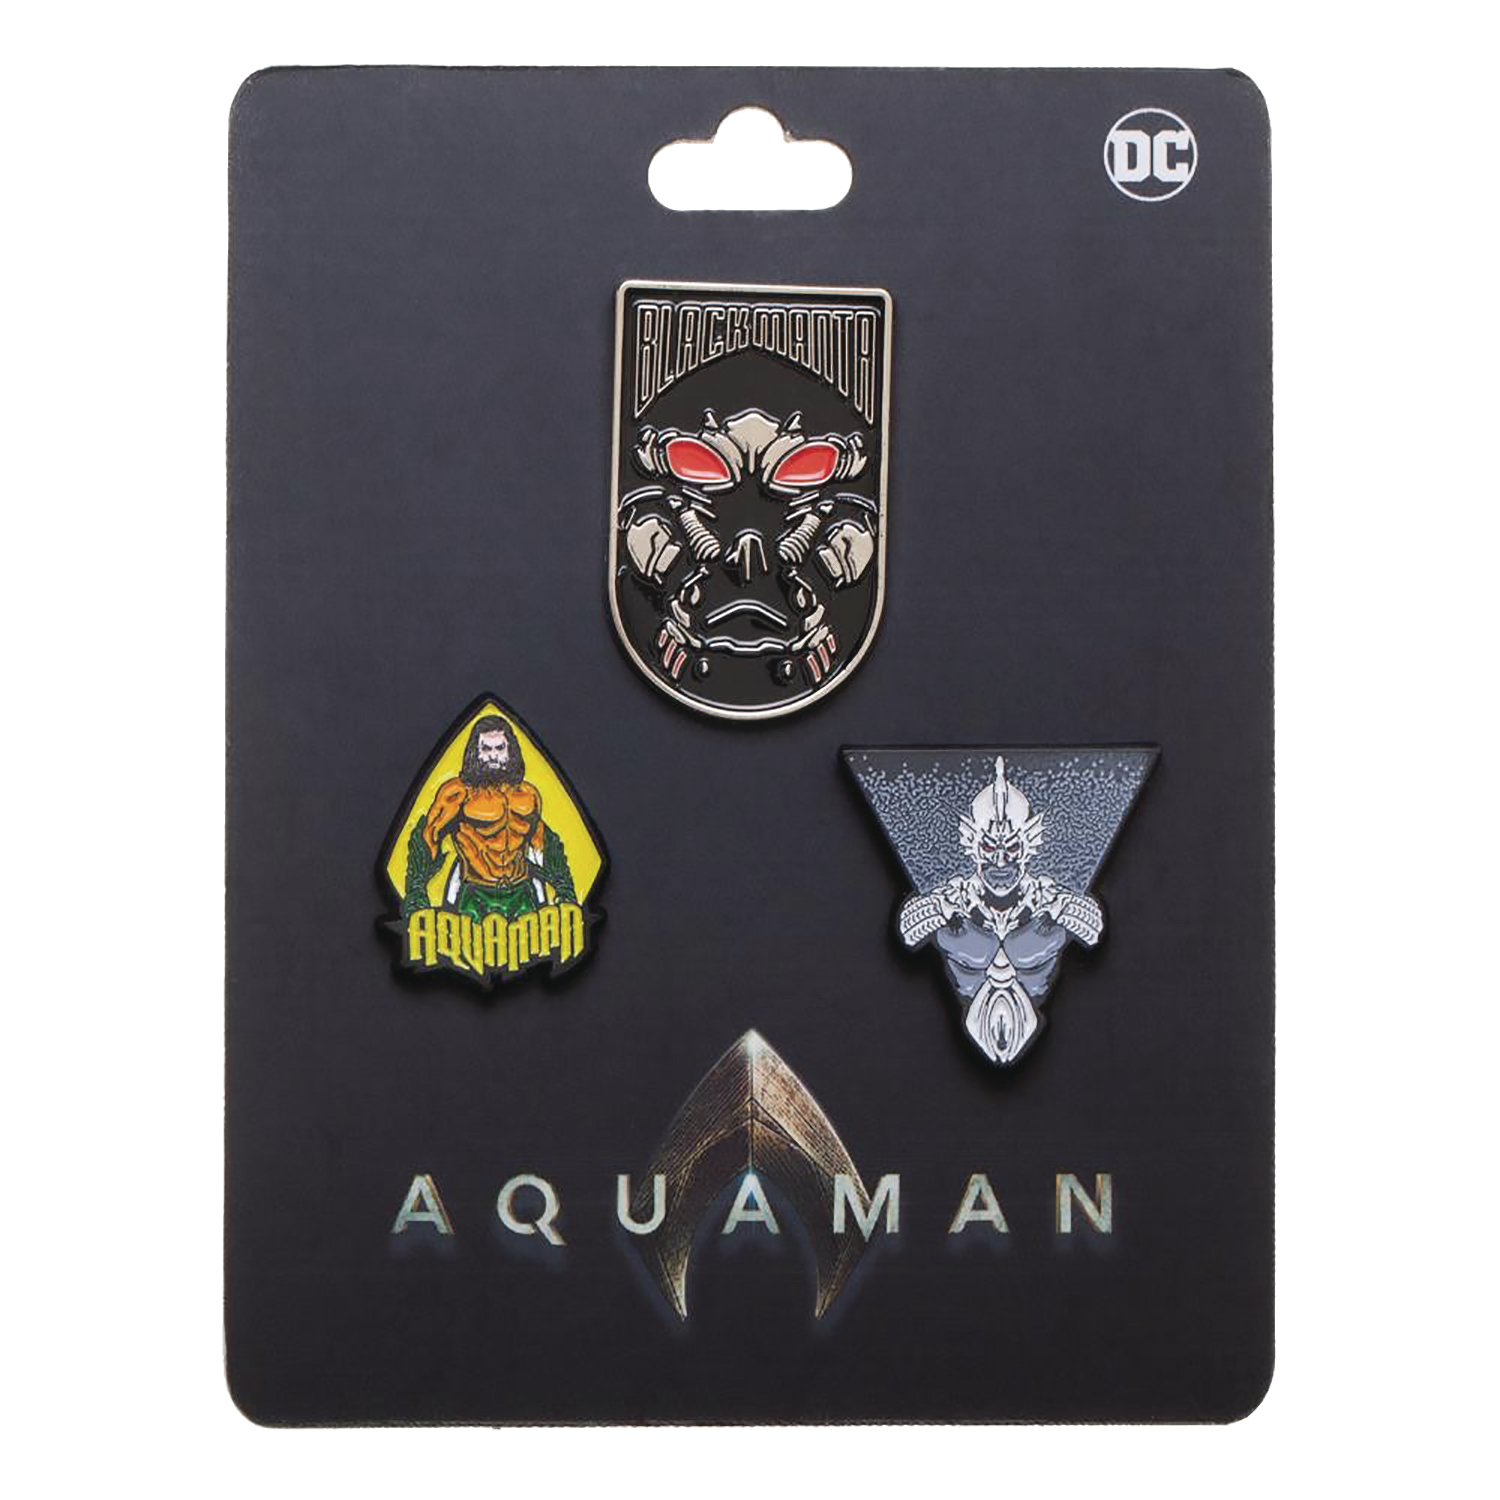 AQUAMAN MOVIE 3PC LAPEL PIN SET